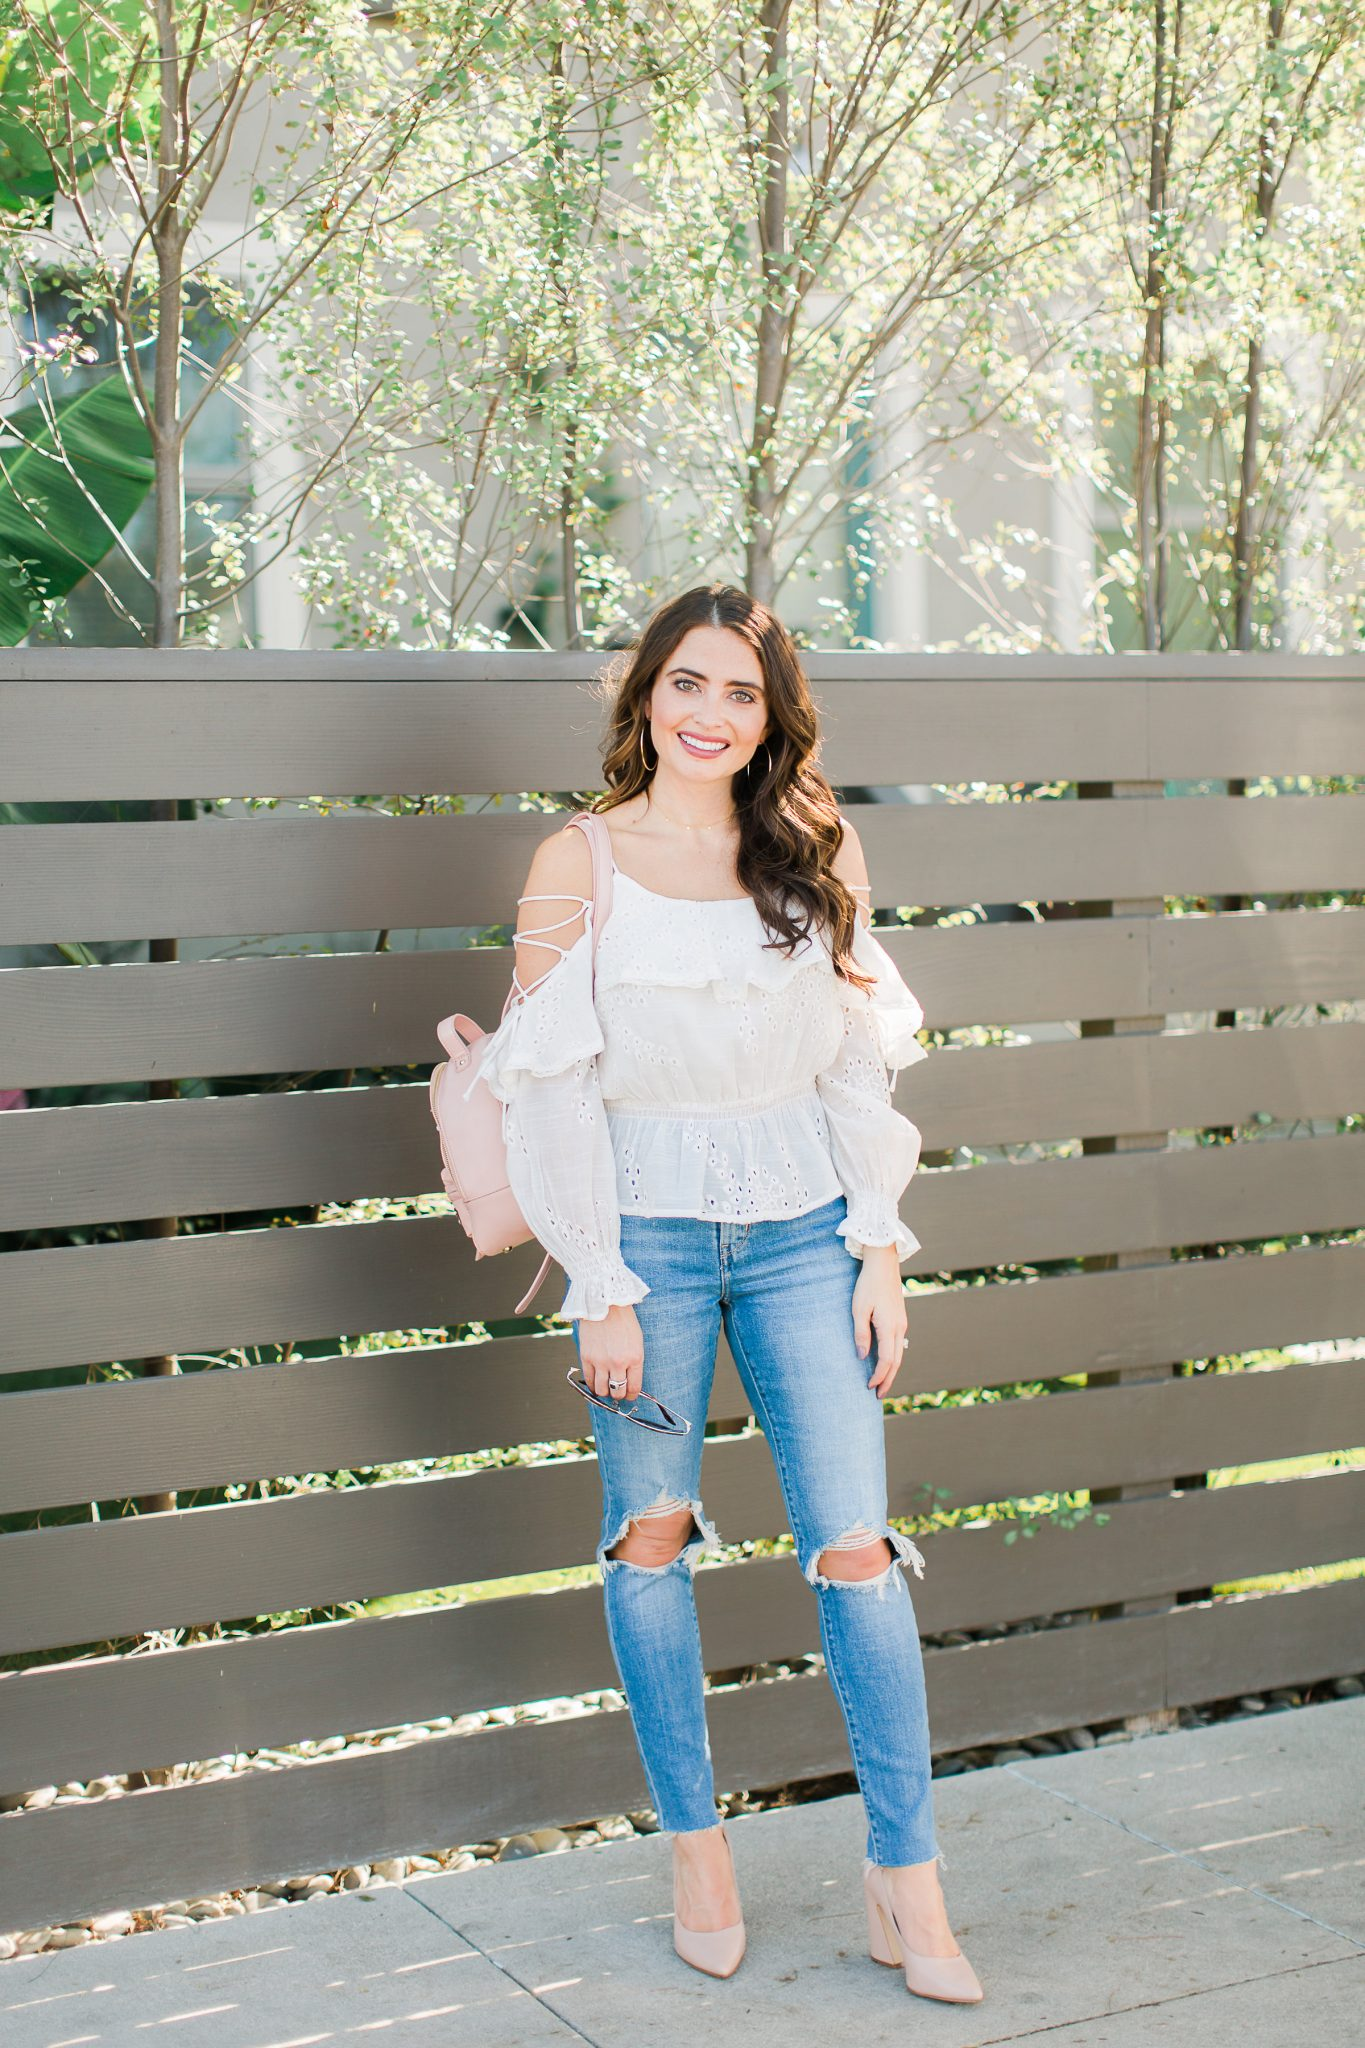 White eyelet top and Levi's jeans - Shopbop Sale Spring Picks featured by popular Orange County fashion blogger, Maxie Elle